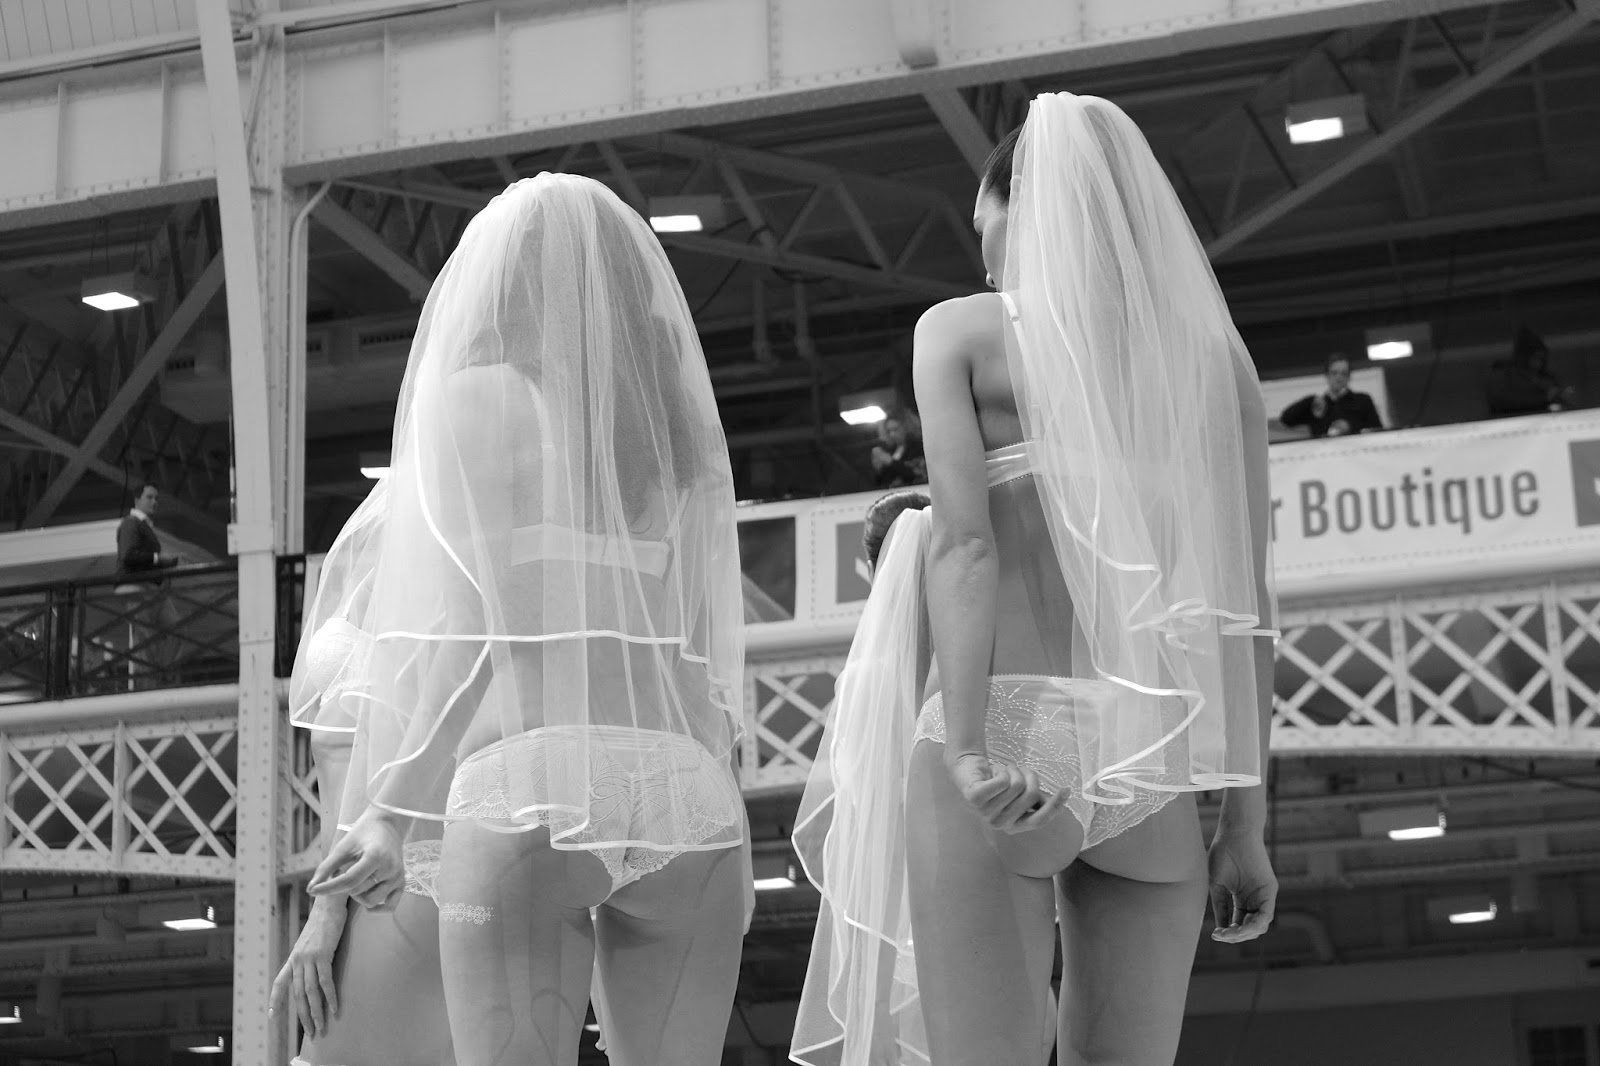 The National Wedding Show London lingerie catwalk